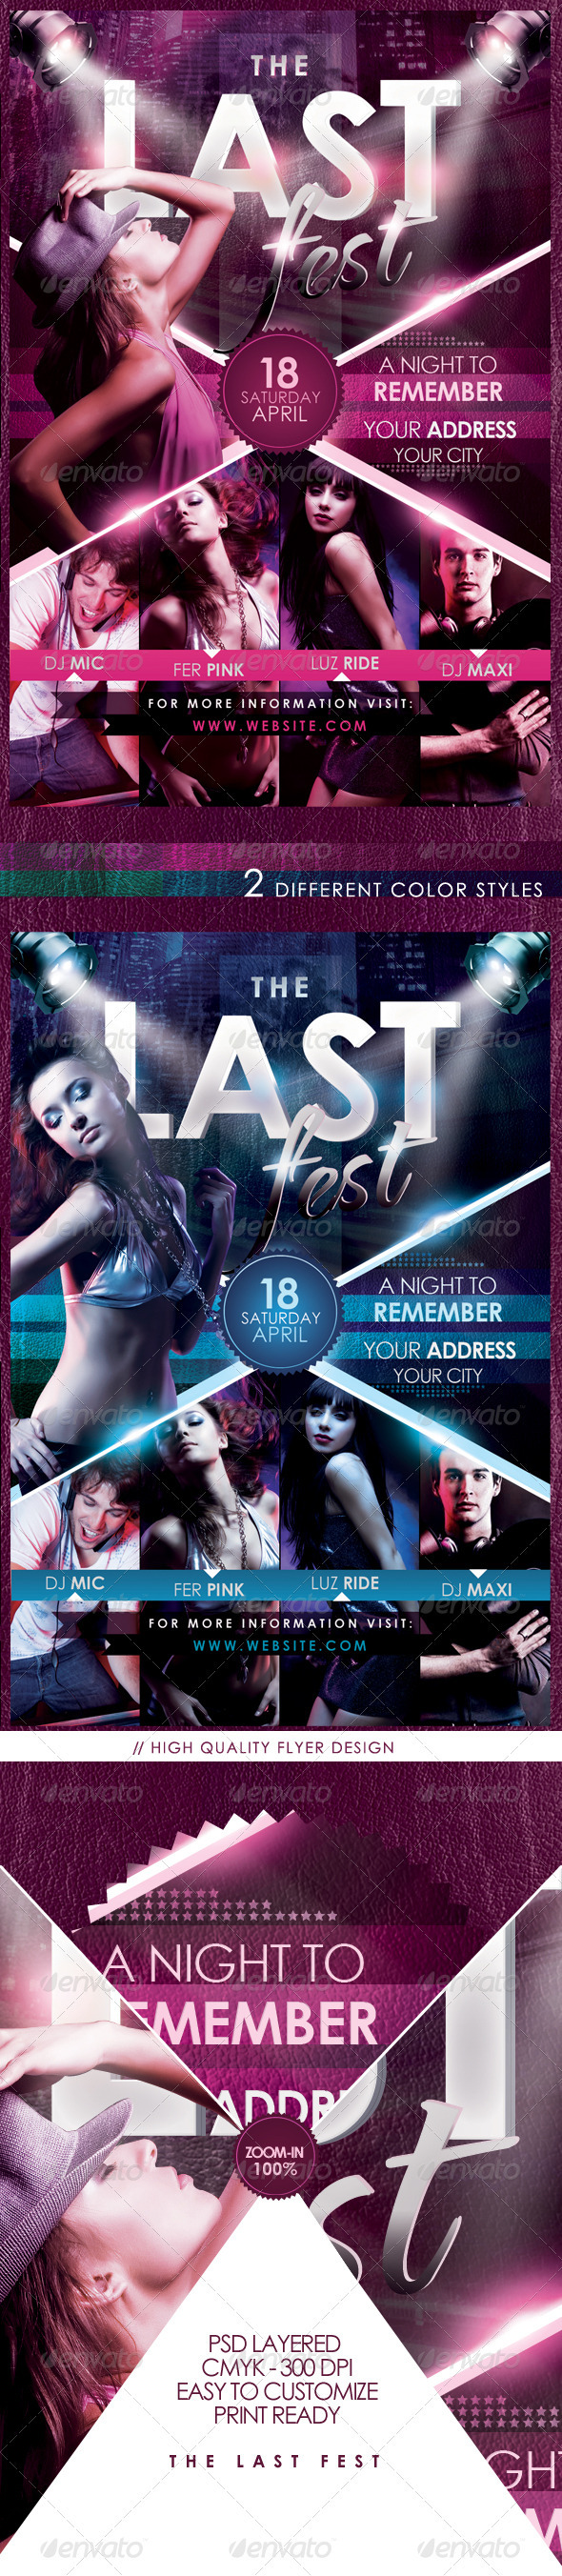 The Last Fest Flyer Template - Flyers Print Templates